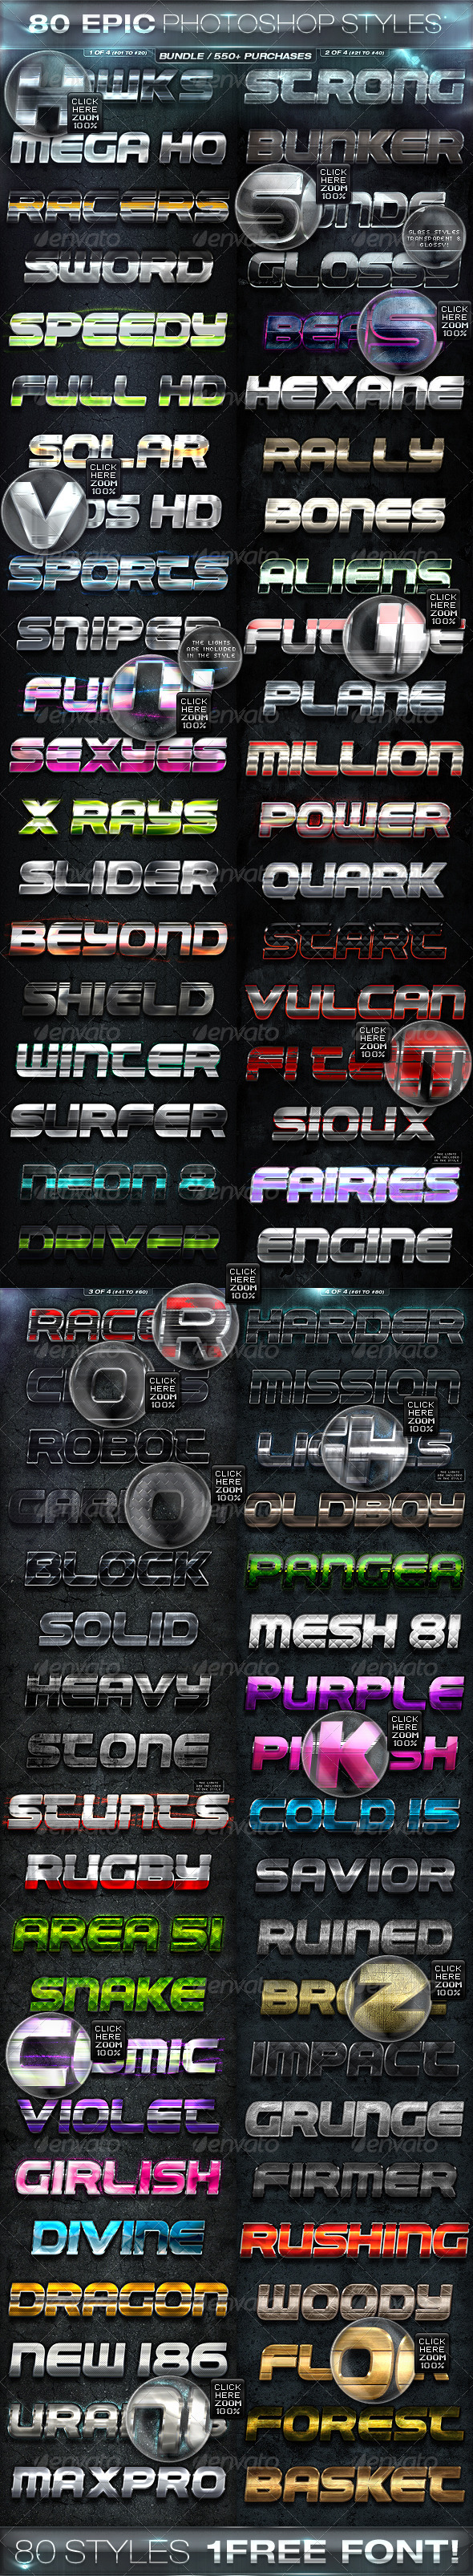 80 EPIC PHOTOSHOP STYLES [BUNDLE] - Text Effects Styles